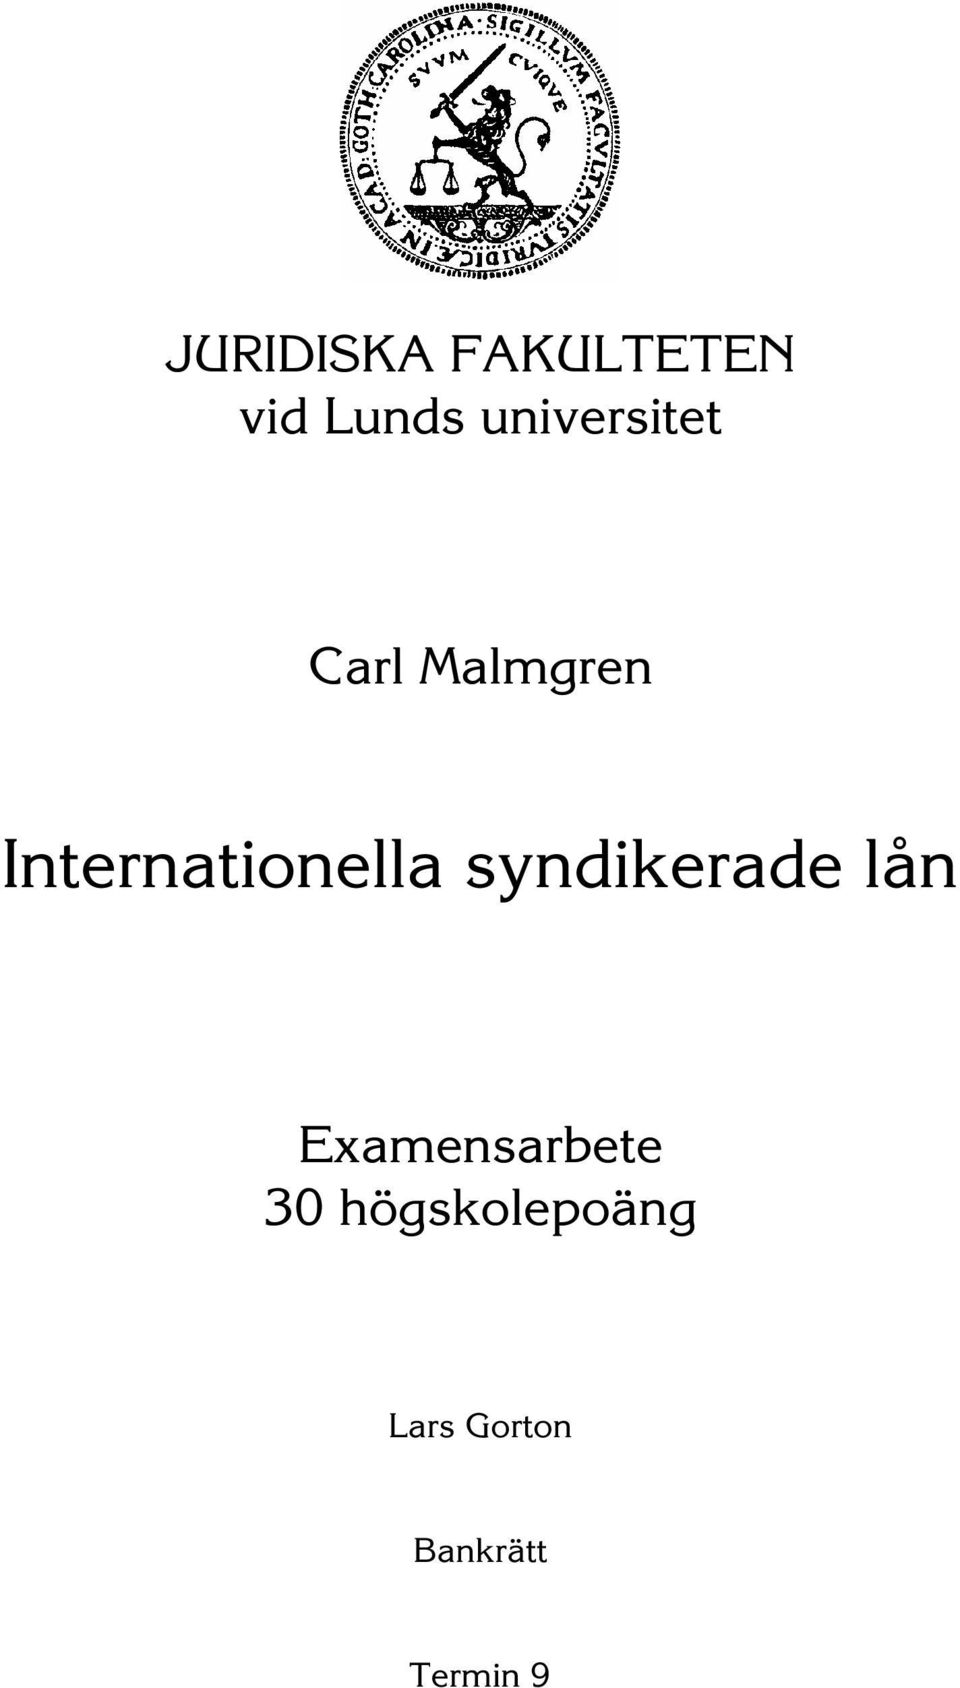 Internationella syndikerade lån